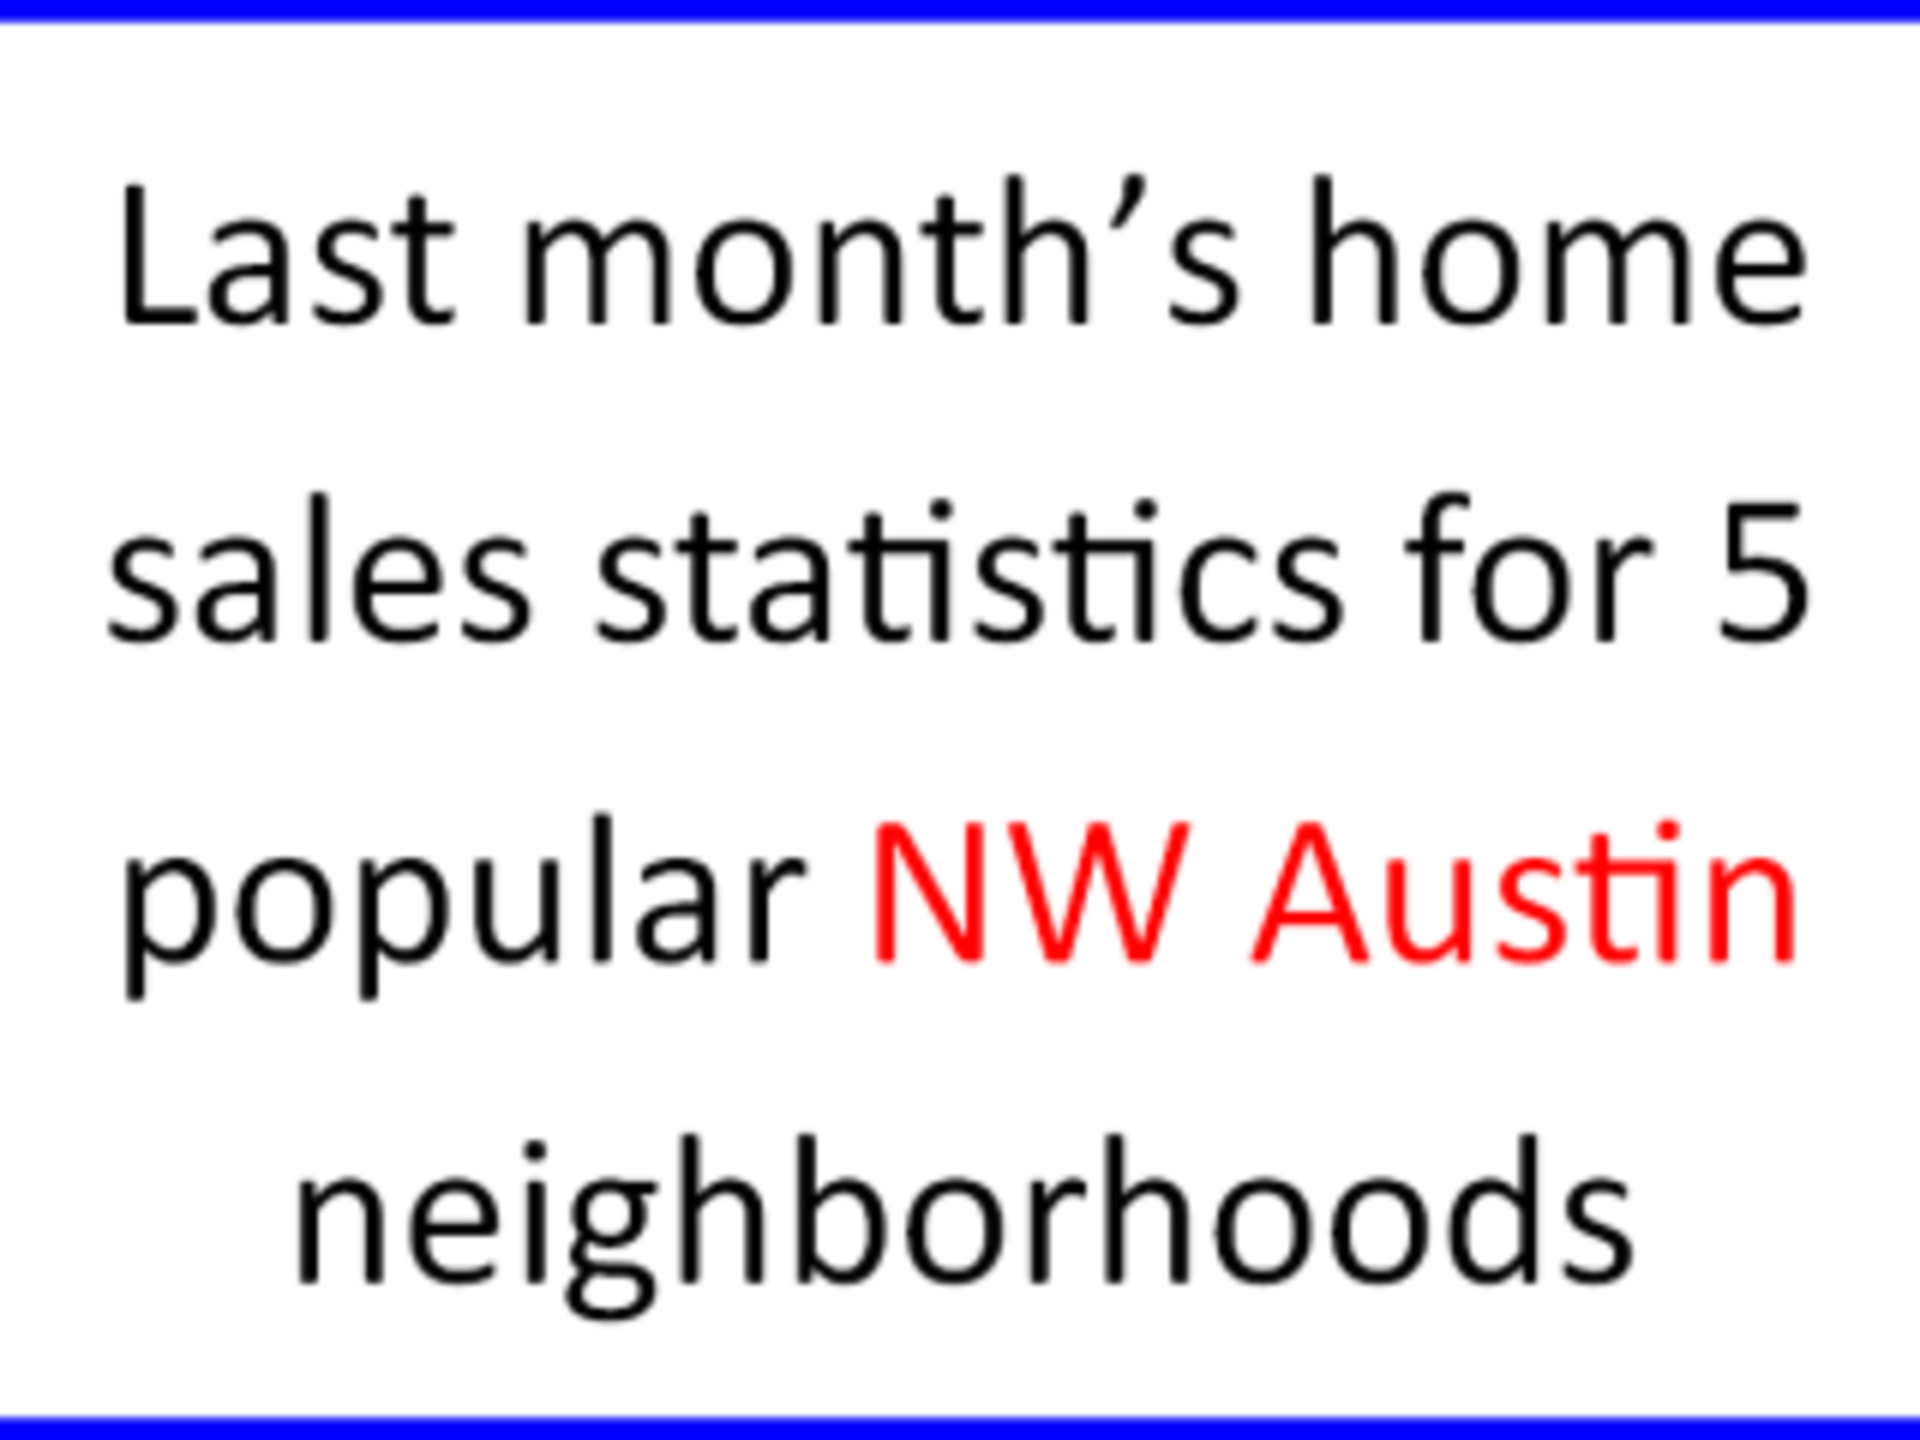 August home sales statistics for 5 popular NW Austin neighborhoods